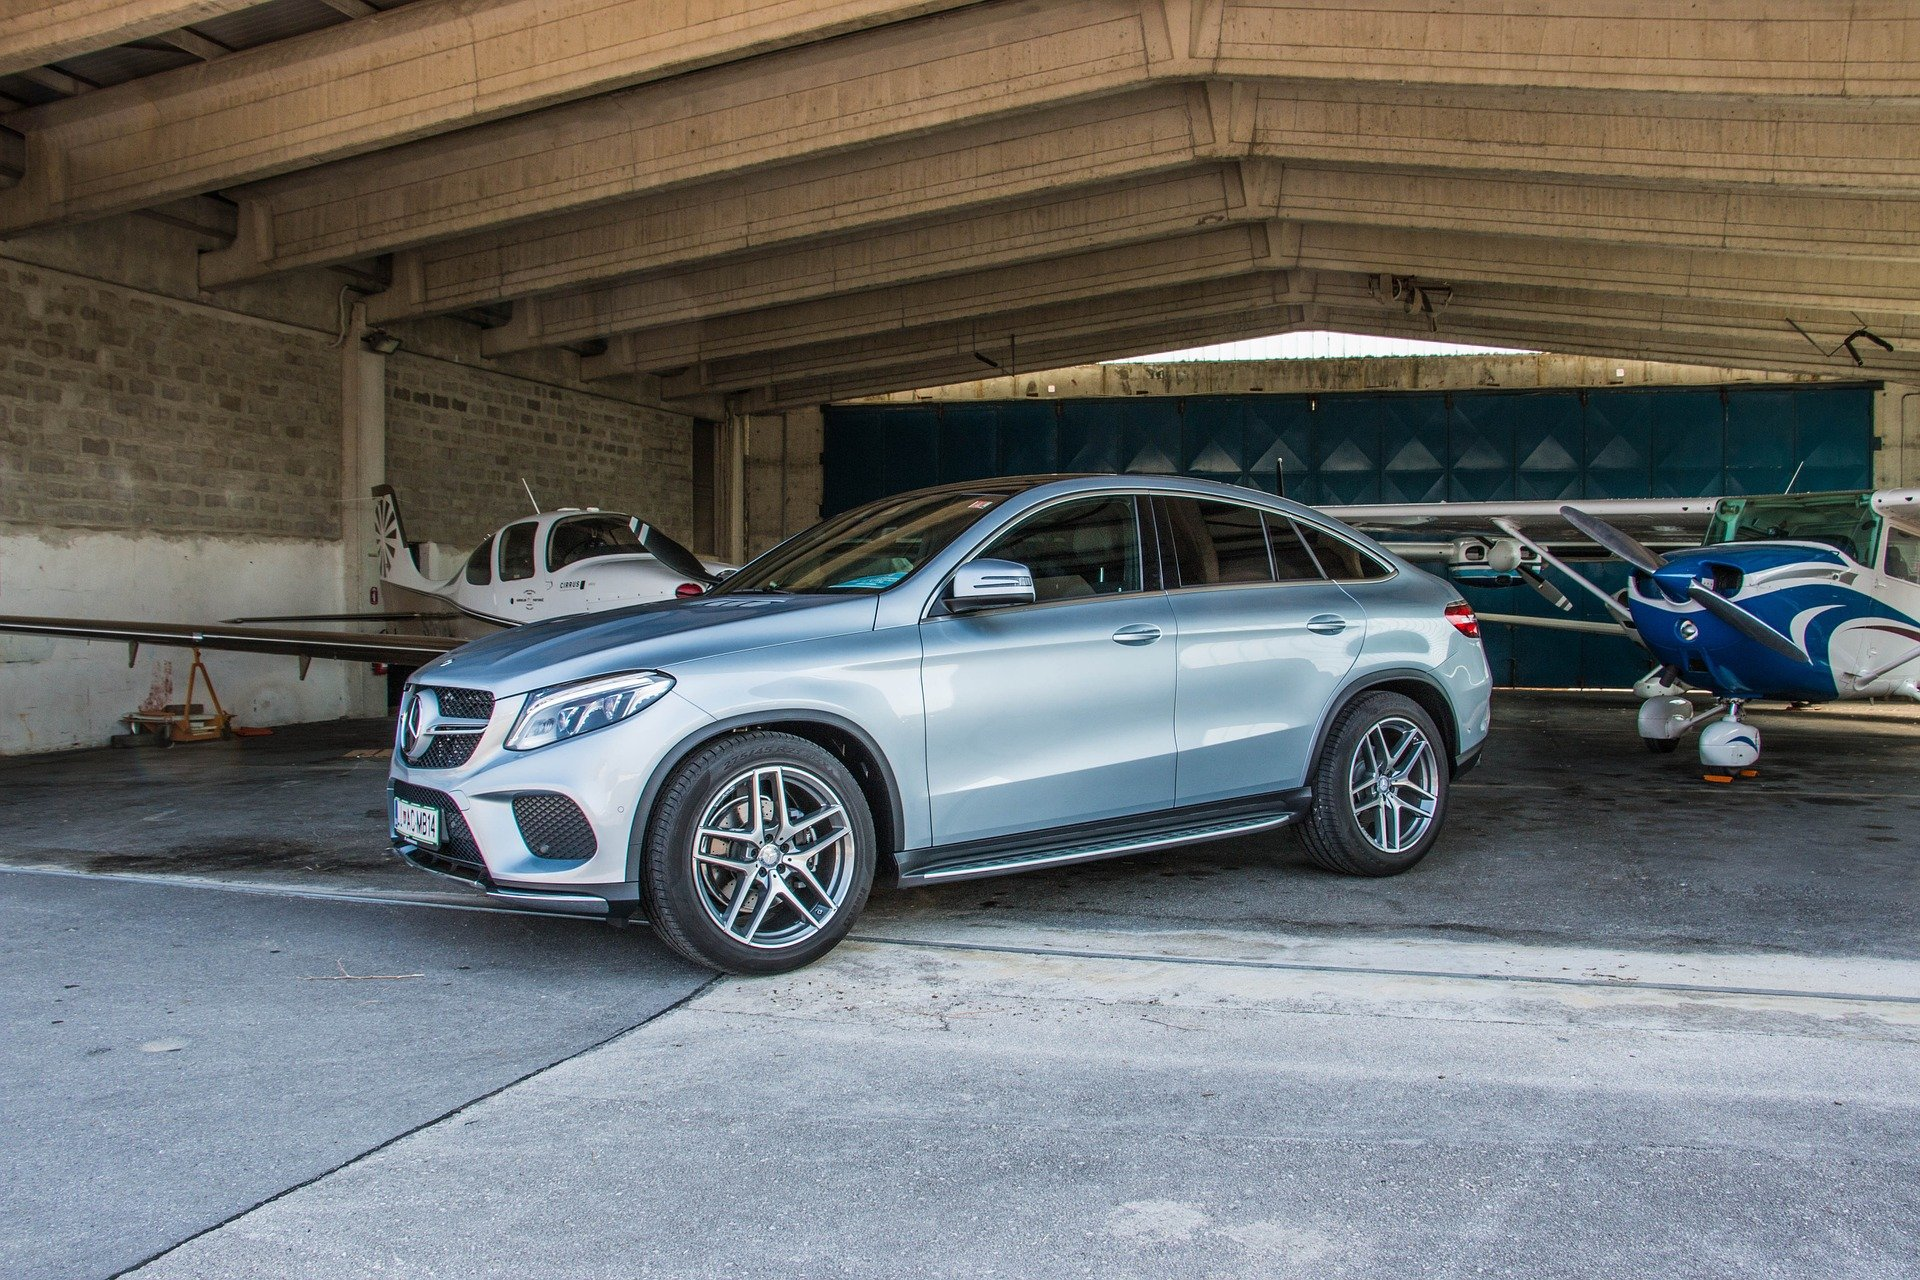 Mercedes Benz SUV in Independence